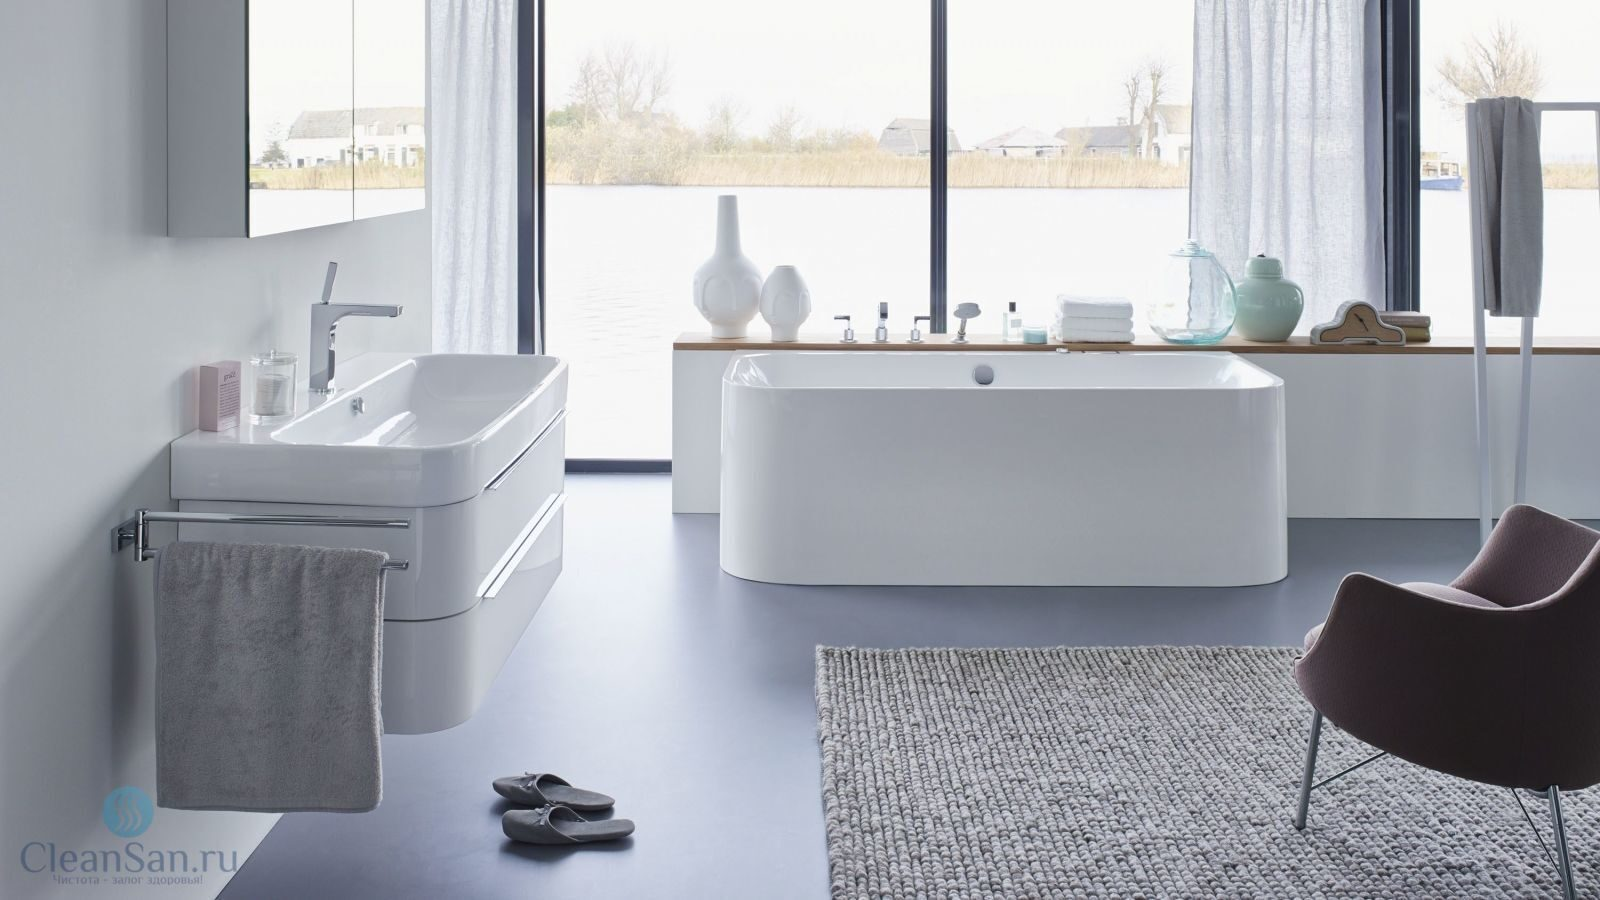 Magnificent Duravit Starck Tub Photos - Bathroom and Shower Ideas ...